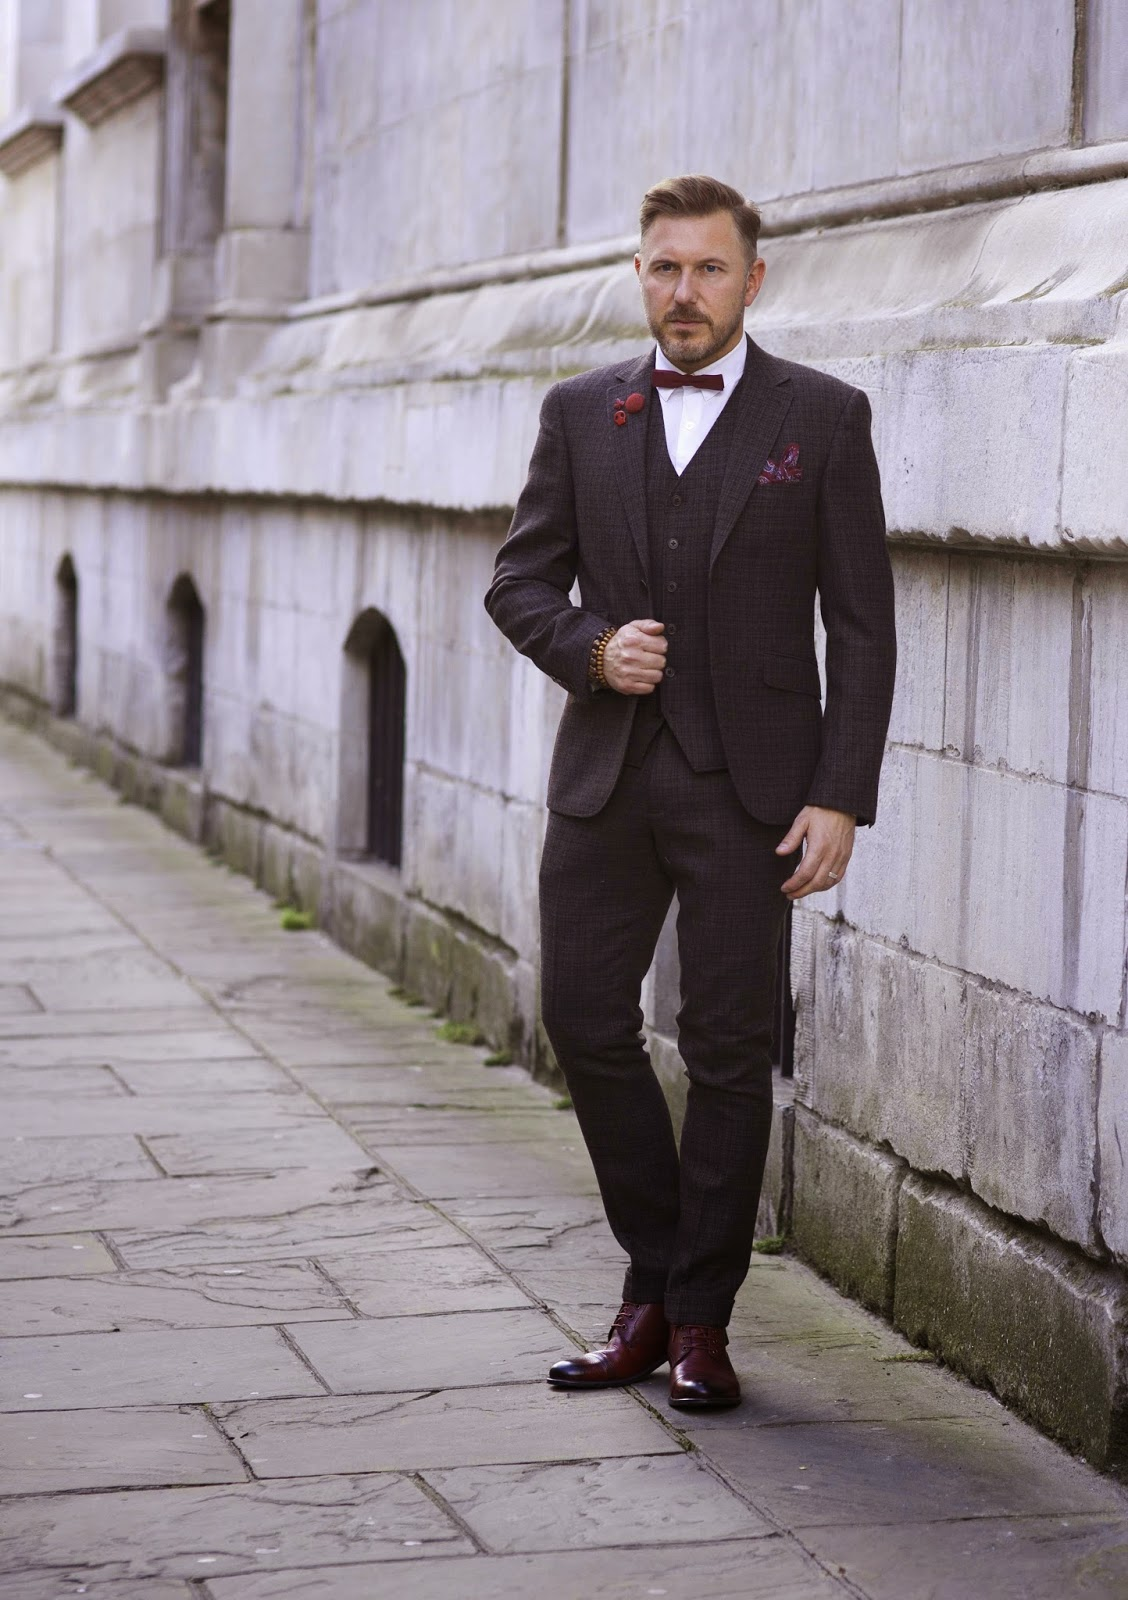 Six Looks With A Three Piece Suit - That Dapper Chap